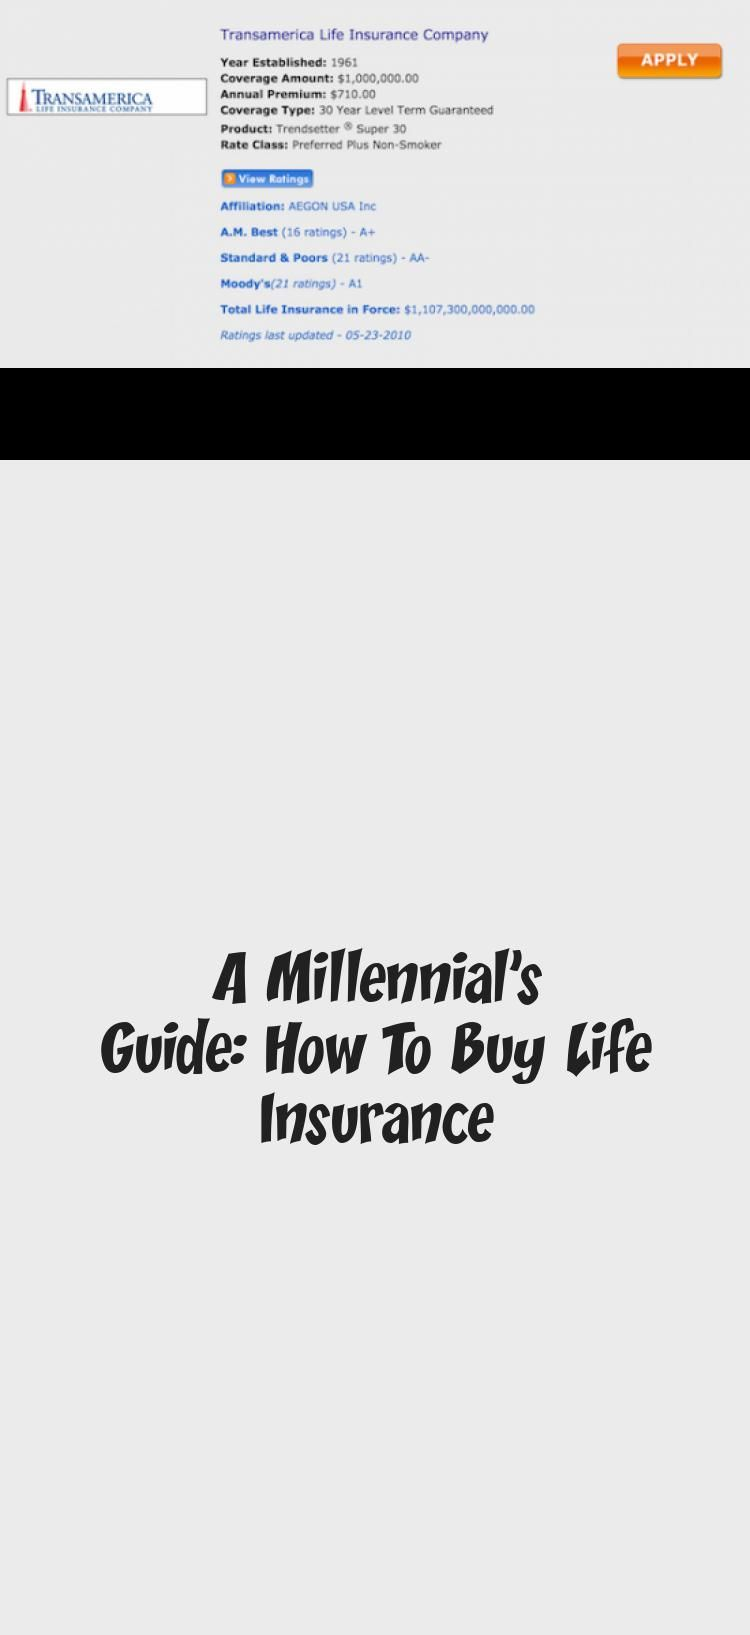 A Millennial S Guide How To Buy Life In 2020 Business Insurance Life Insurance Companies Life Insurance Policy